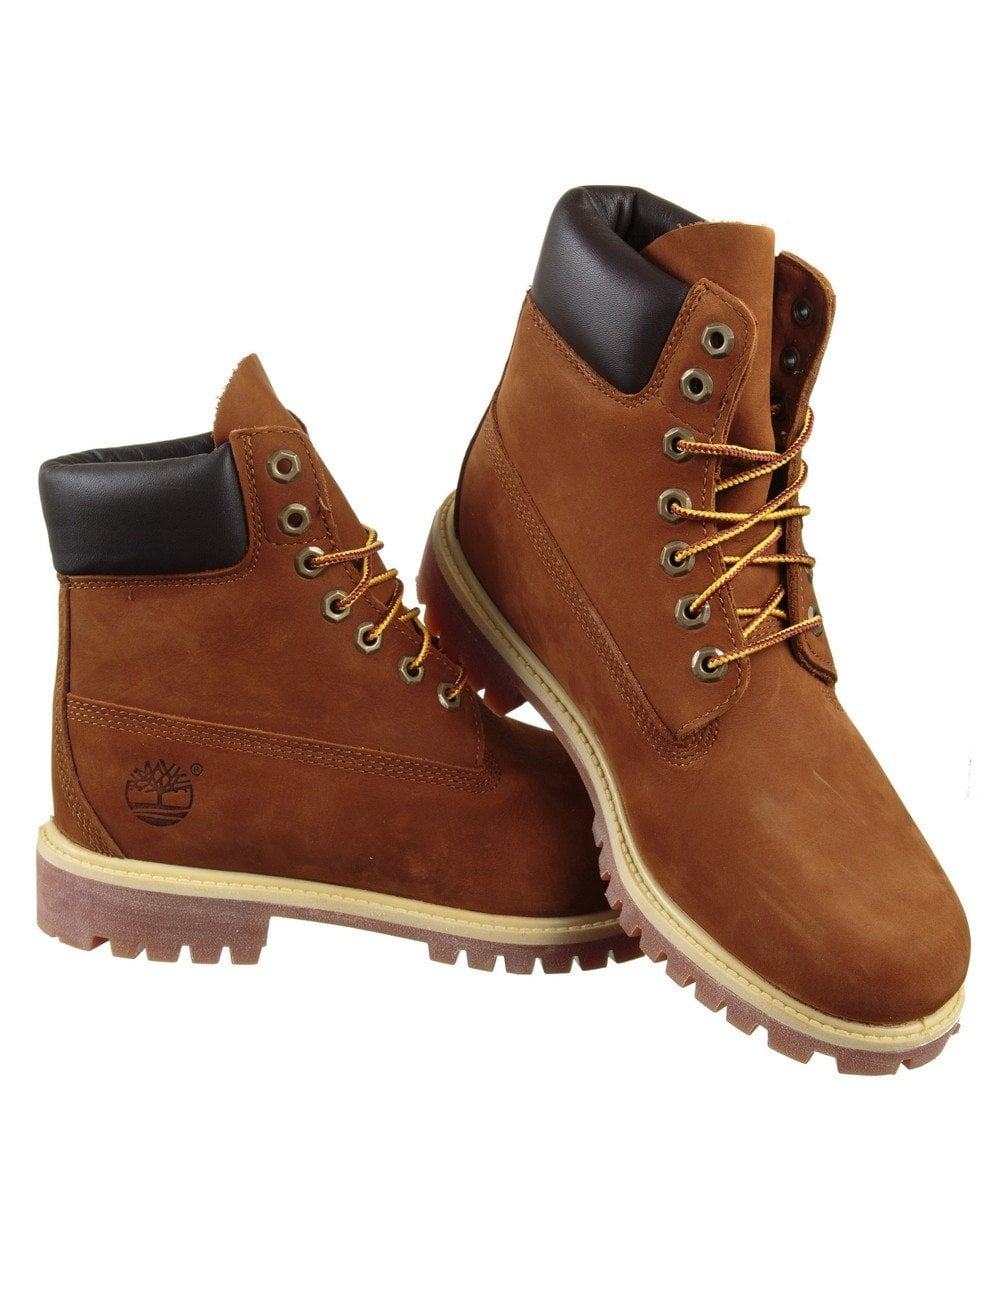 Timberland 6-inch Premium Waterproof Boot - Rust Orange - Shoes ... 068b34e0a